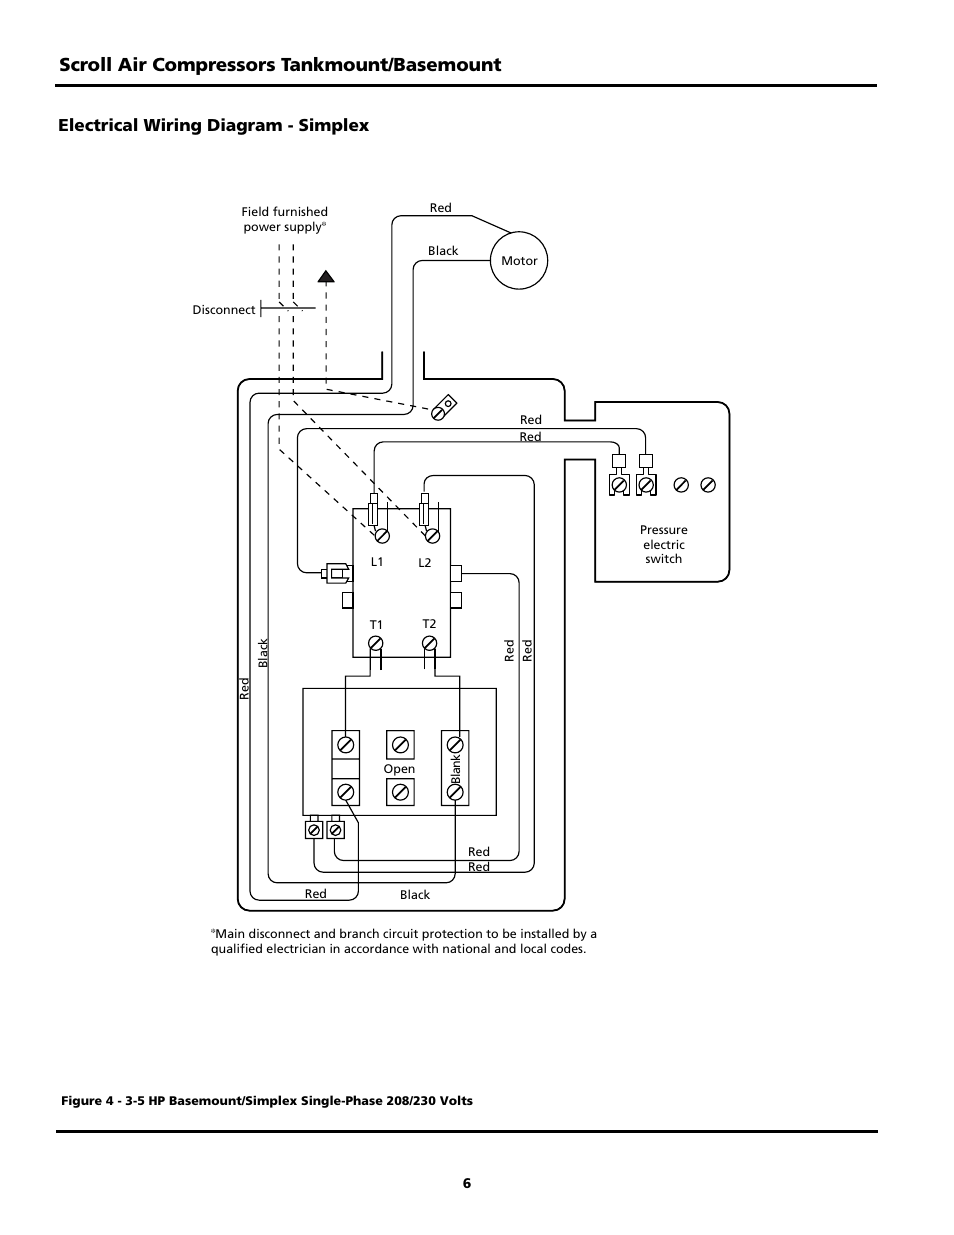 Scroll Air Compressors Tankmount Basemount Electrical Wiring Fig 3 Branch Circuit Individual It Is A Supplies Diagram Simplex Powerex Sbs1517 User Manual Page 6 20